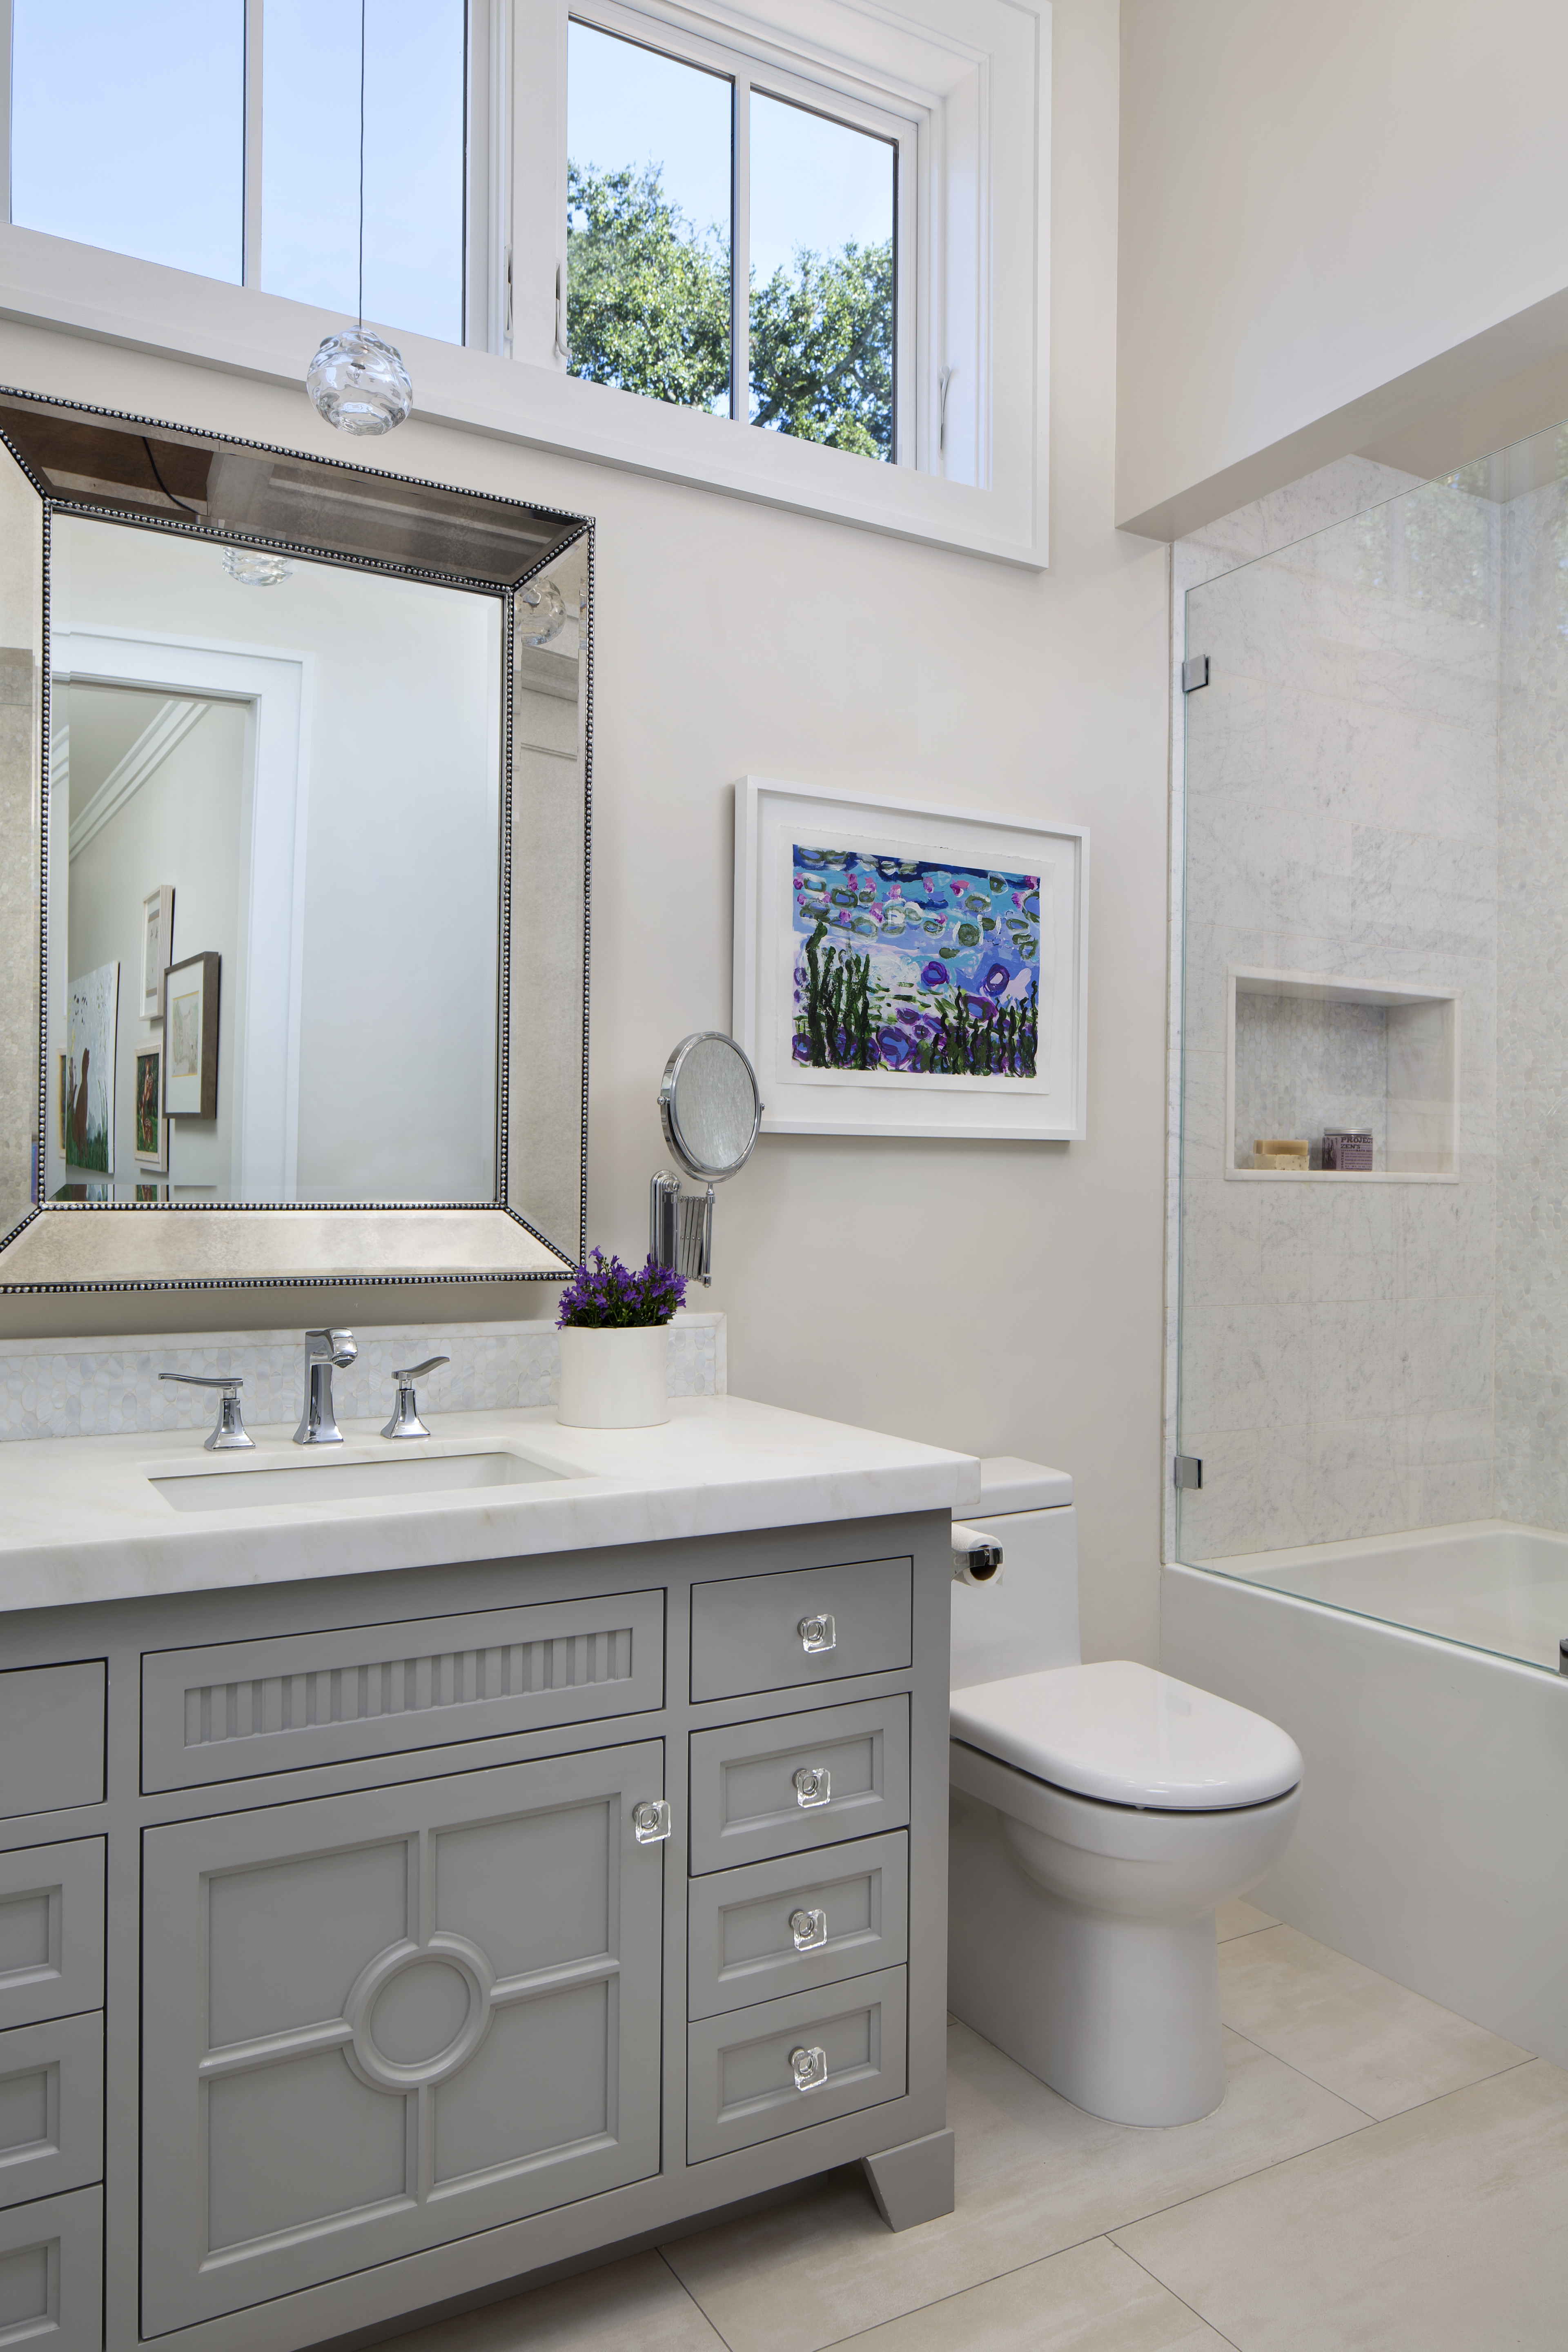 Enter the girl's bathroom, where Artistic Tile is used on both the floor and the shower wall. The spacereflects the decor of the adjoiningbedroom — fromthecrystal pendant andknobs tothe purple flowers and colorful painting.